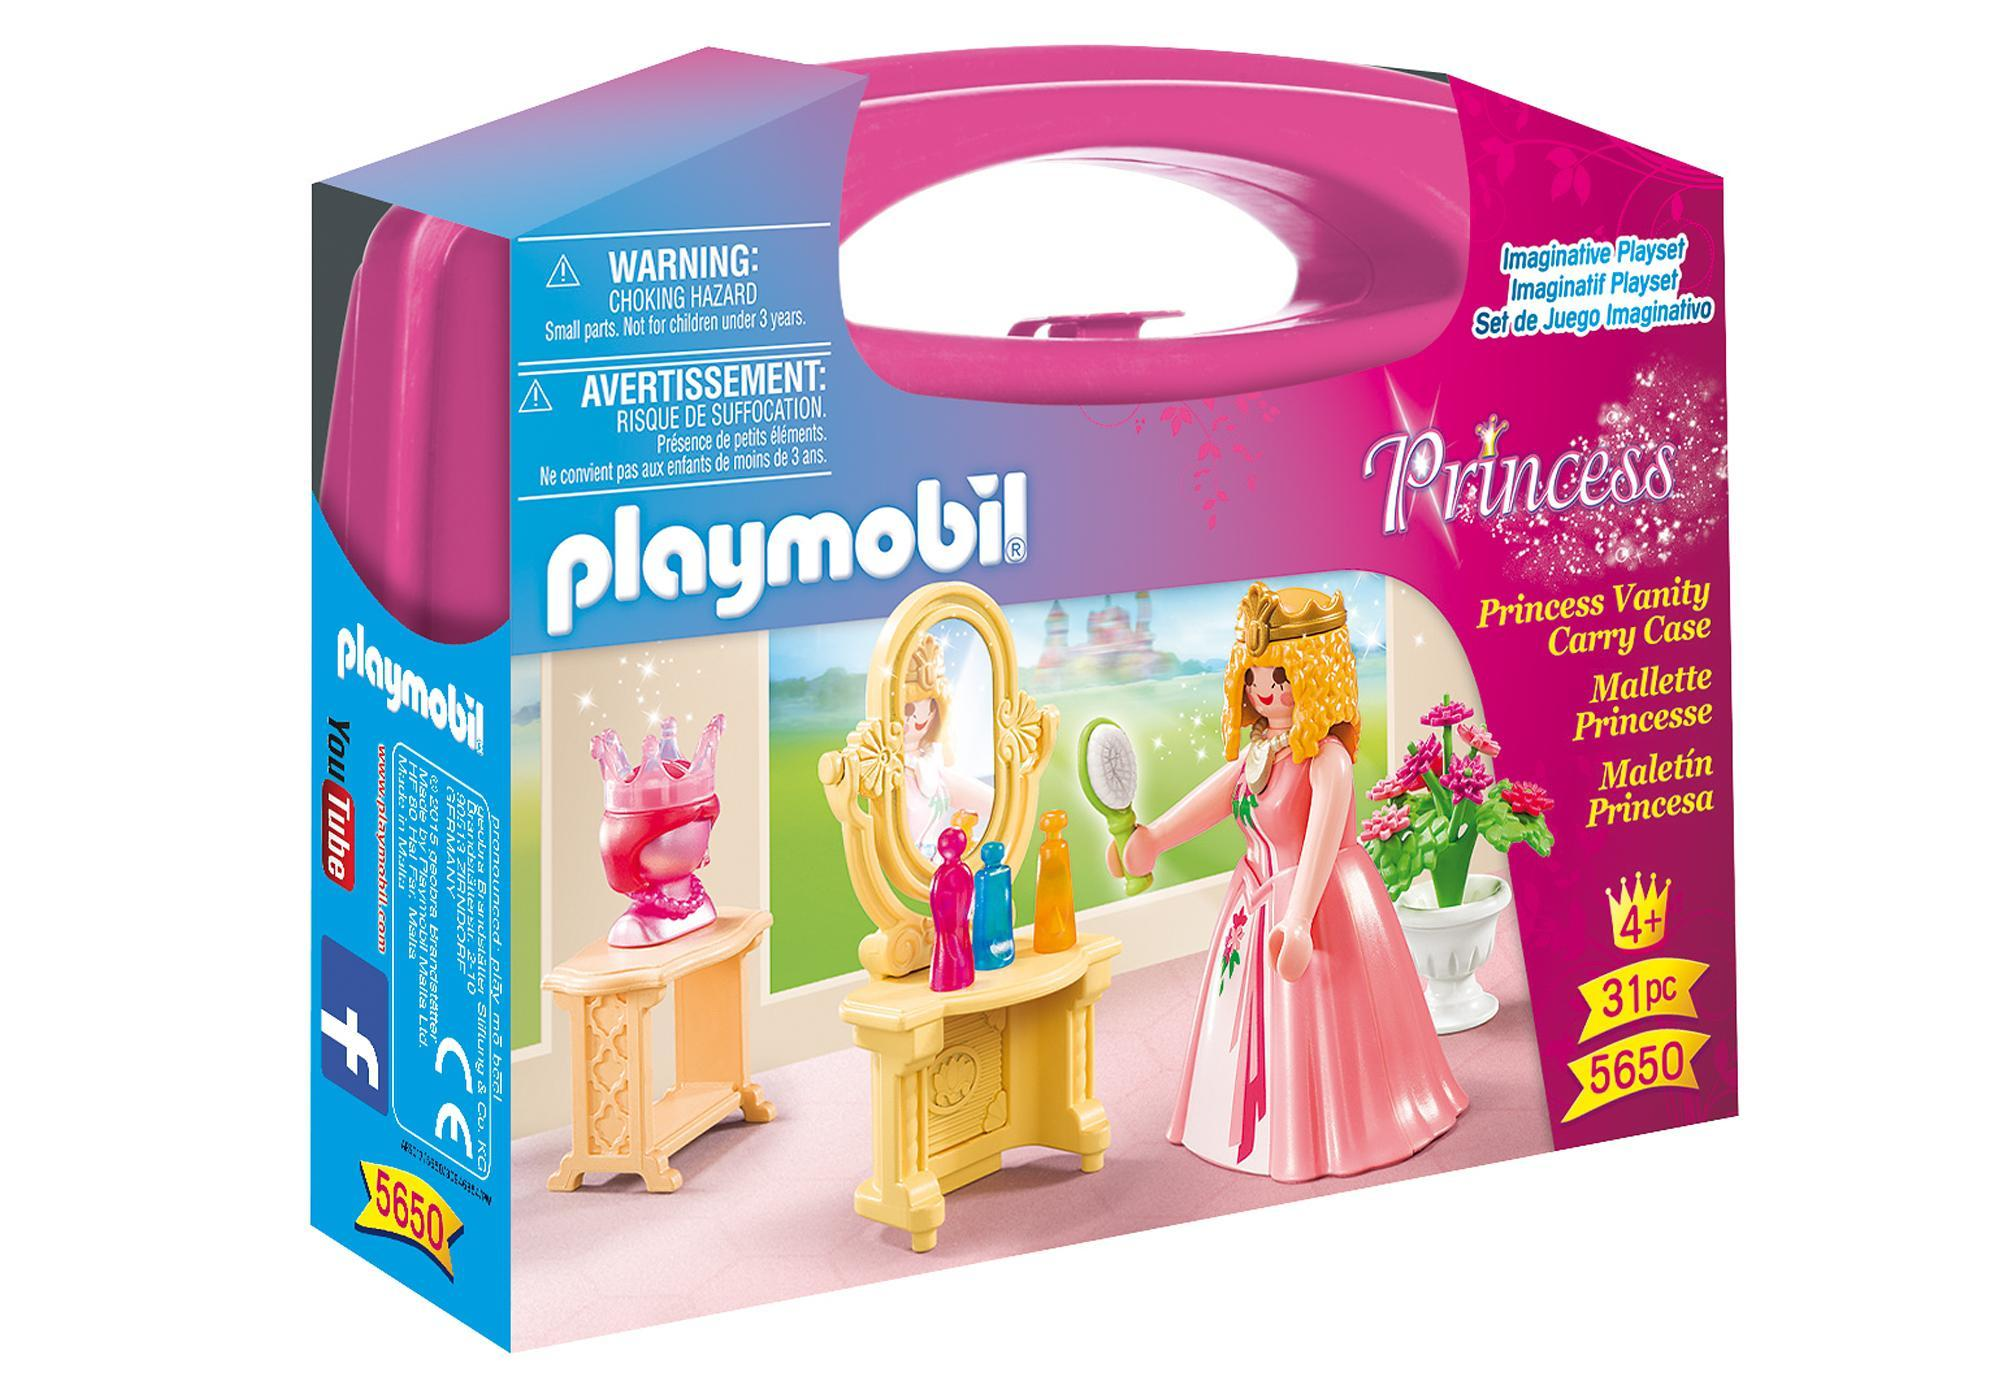 http://media.playmobil.com/i/playmobil/5650_product_detail/Princess Vanity Carry Case